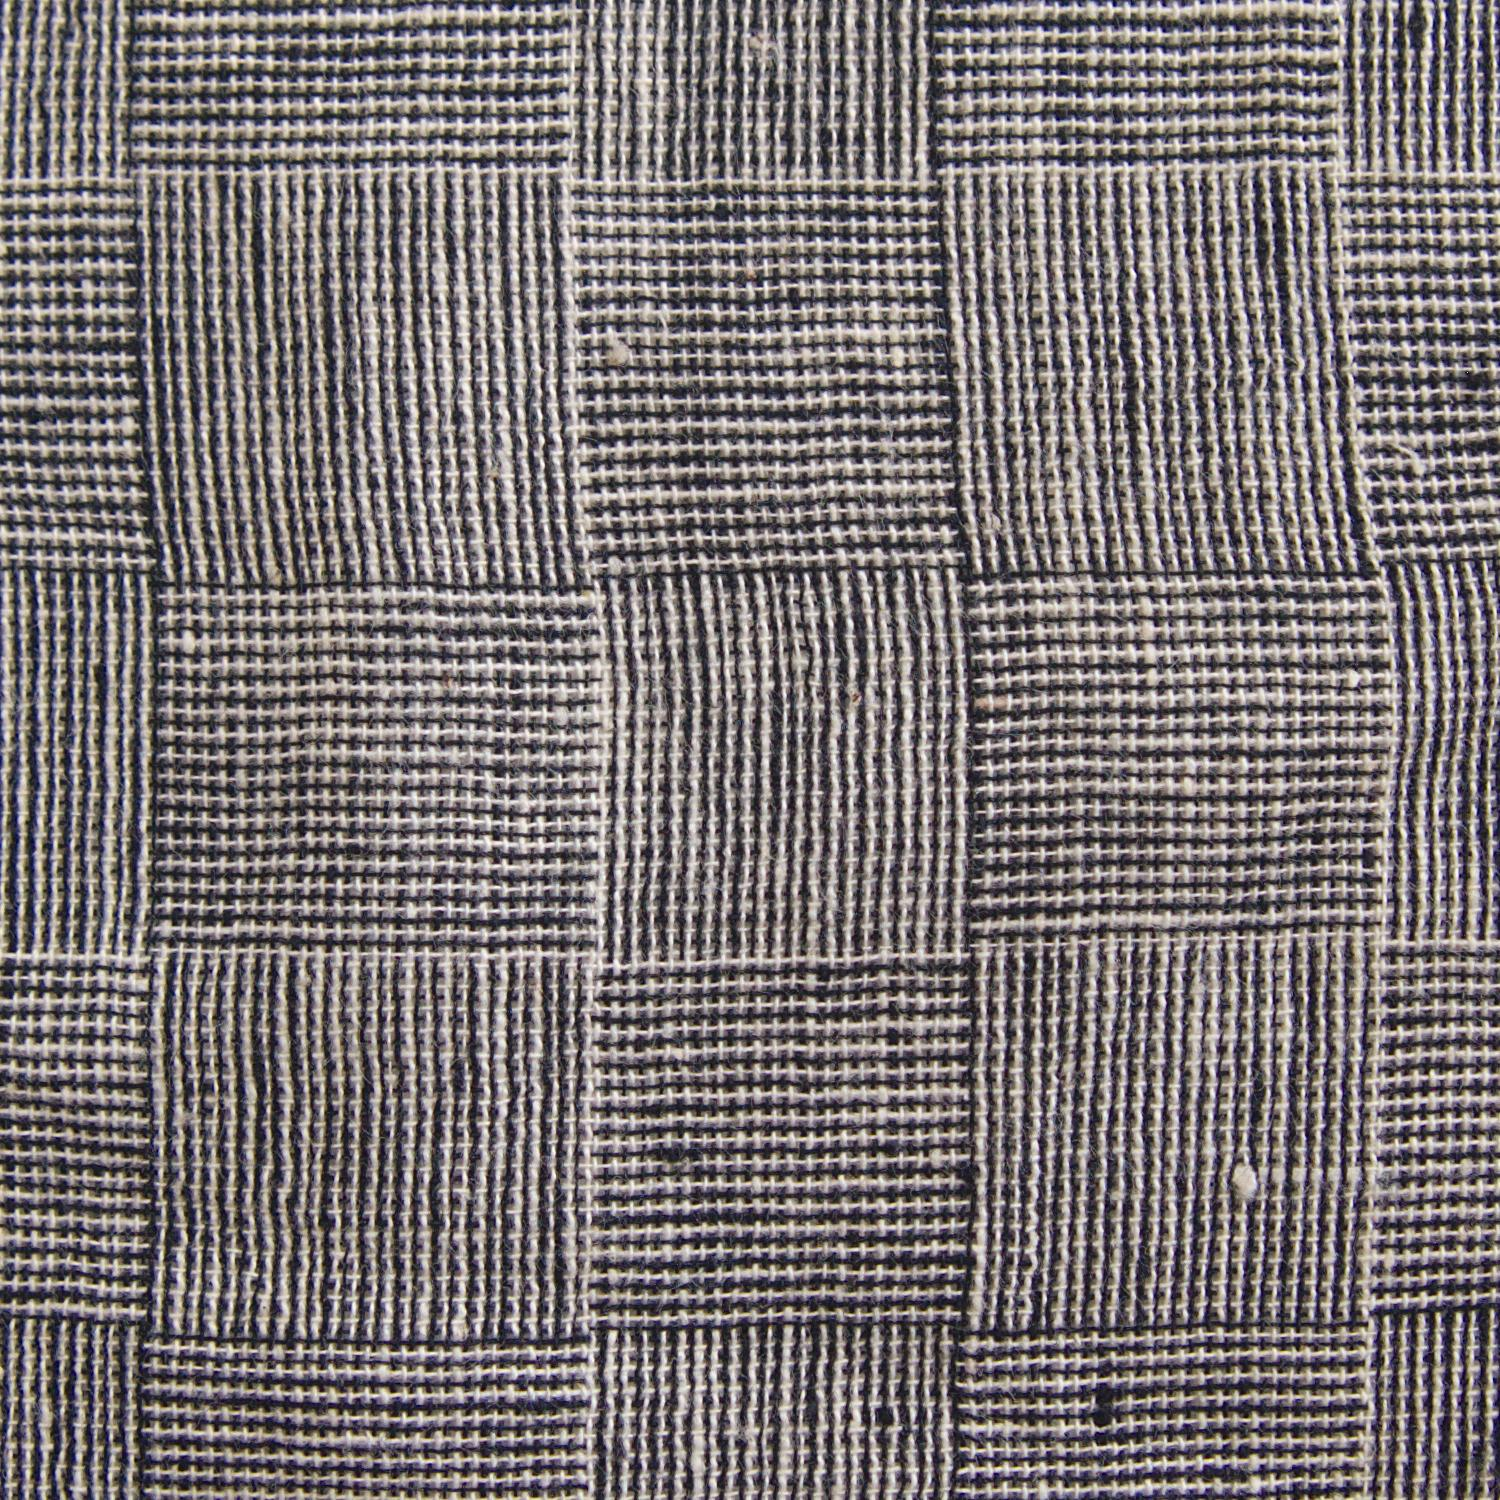 Indian Handloom-Woven Organic Kala Cotton Fabric - Plain 1 by 1 Weave - Checkers Design - Black Reactive Thread Dye - Close Up